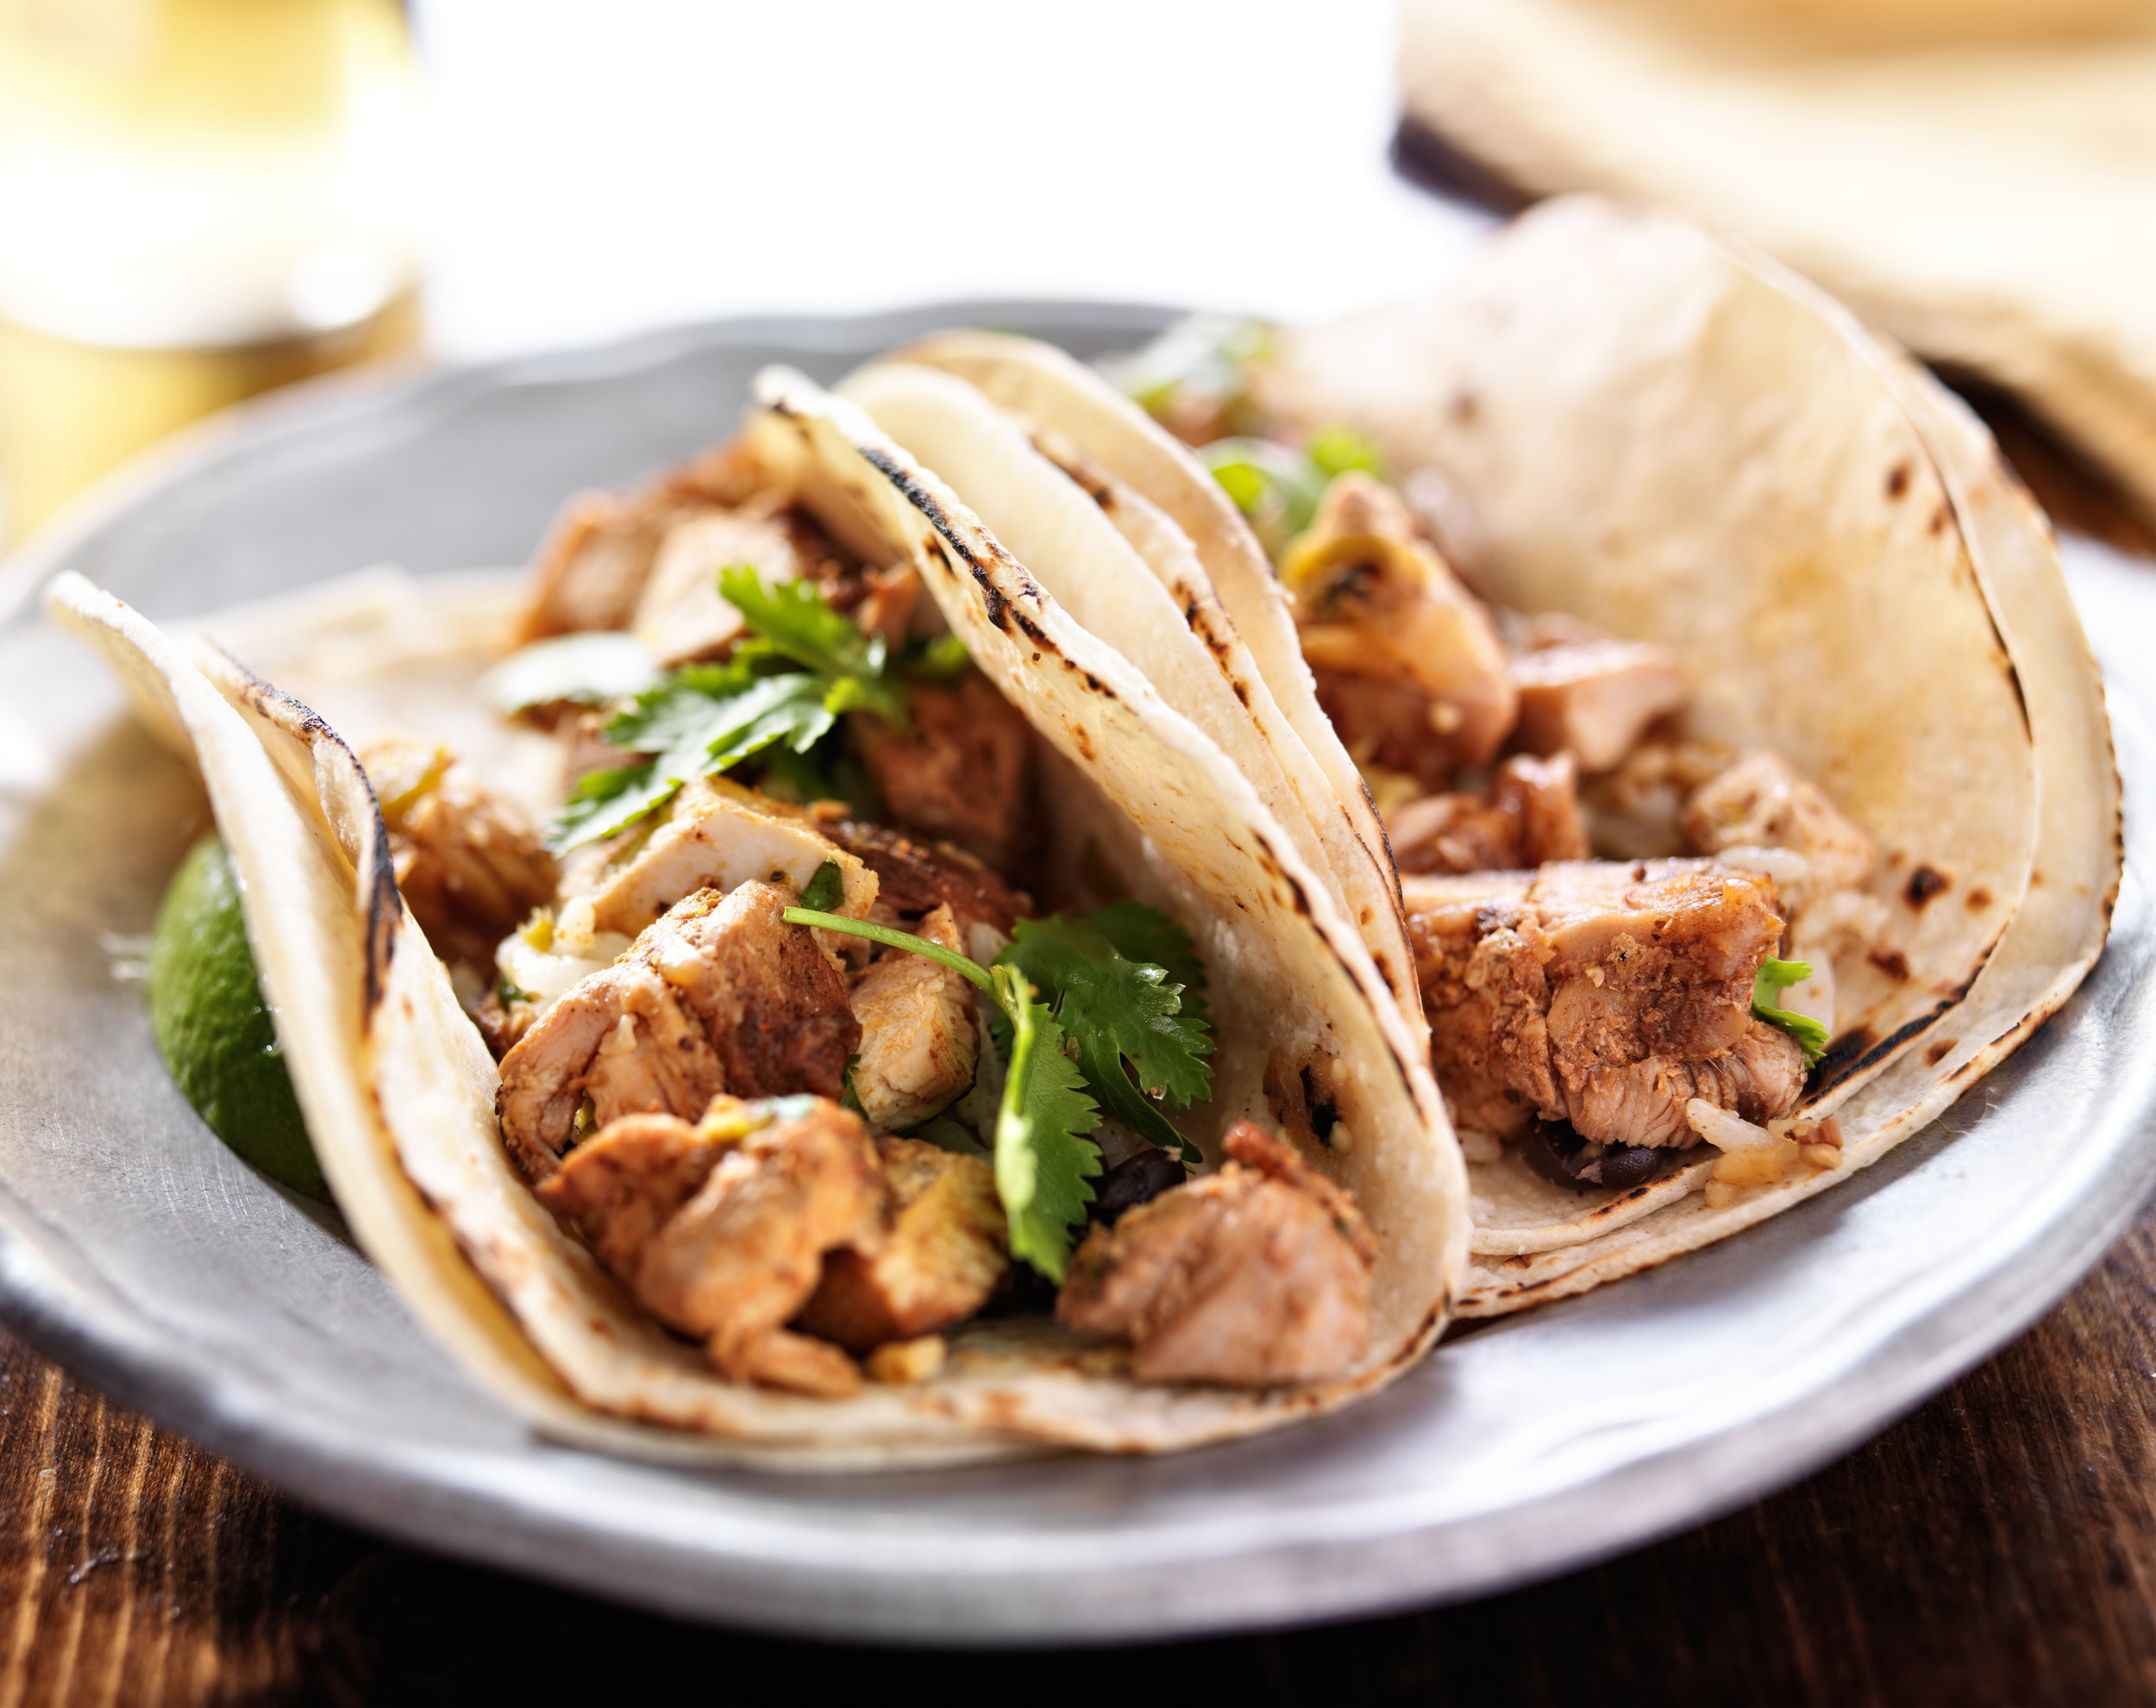 Grilled Chicken Tacos - DTG Image